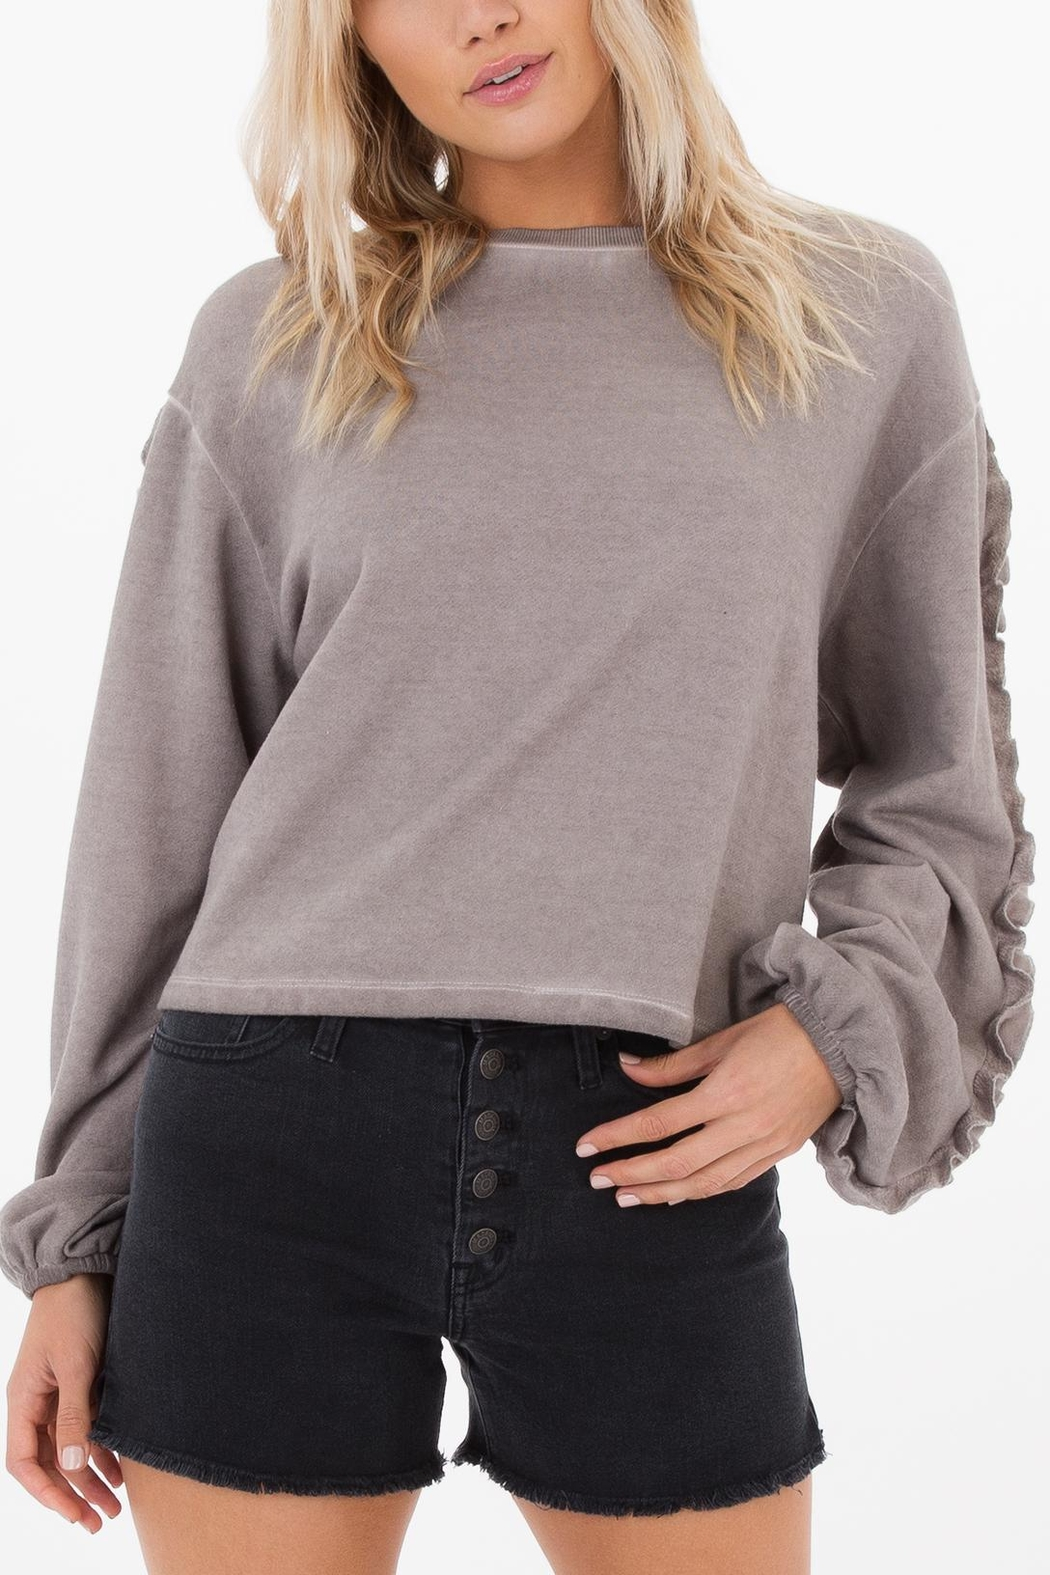 White Crow Abbie Cropped Sweater - Main Image